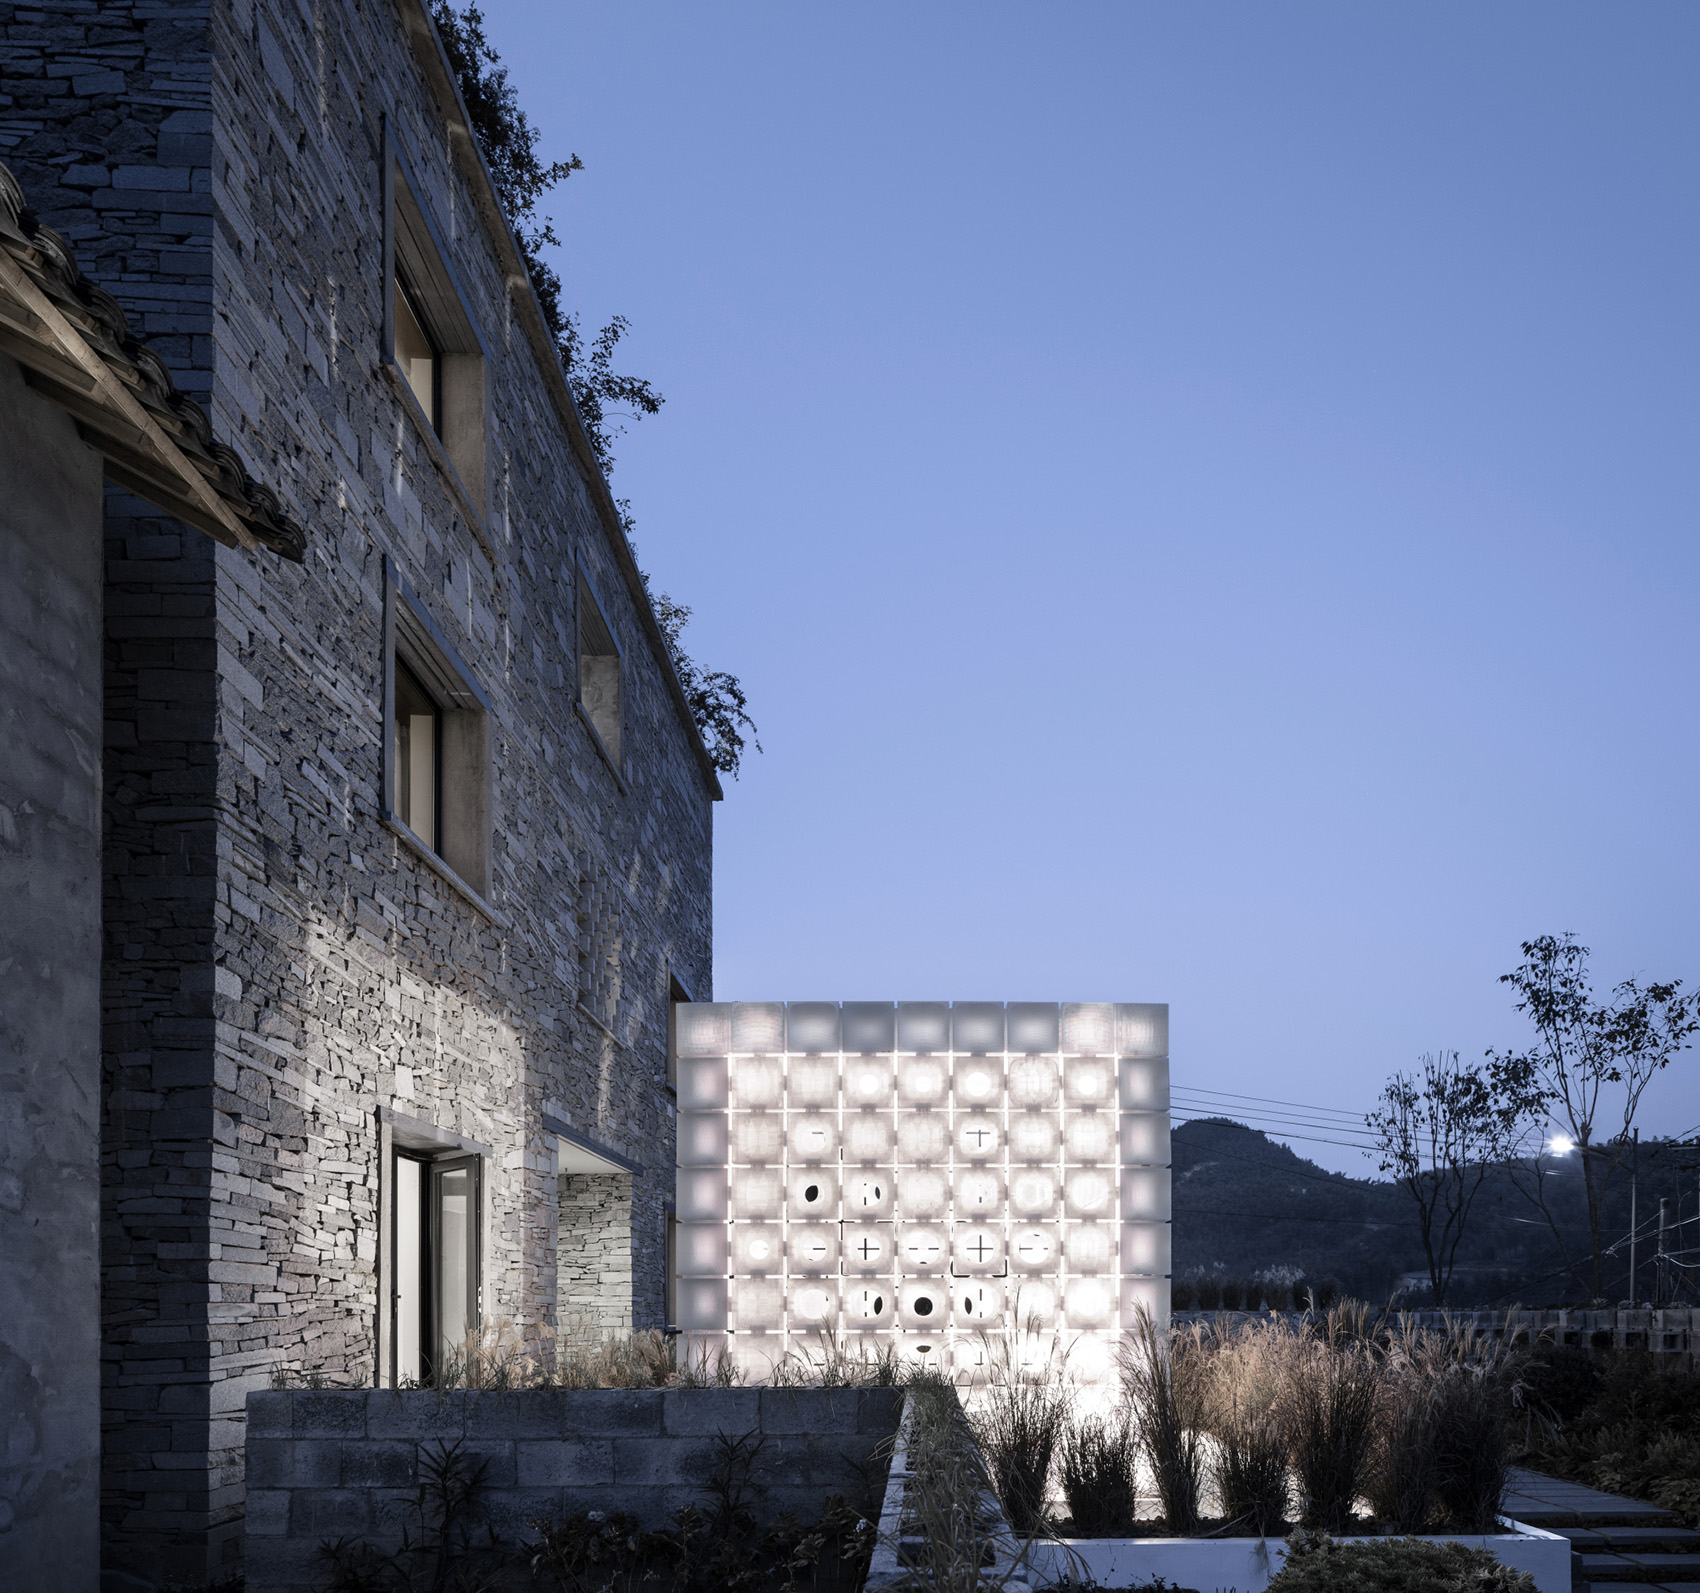 044-LEI-House-China-by-AZL-Architects.jpg